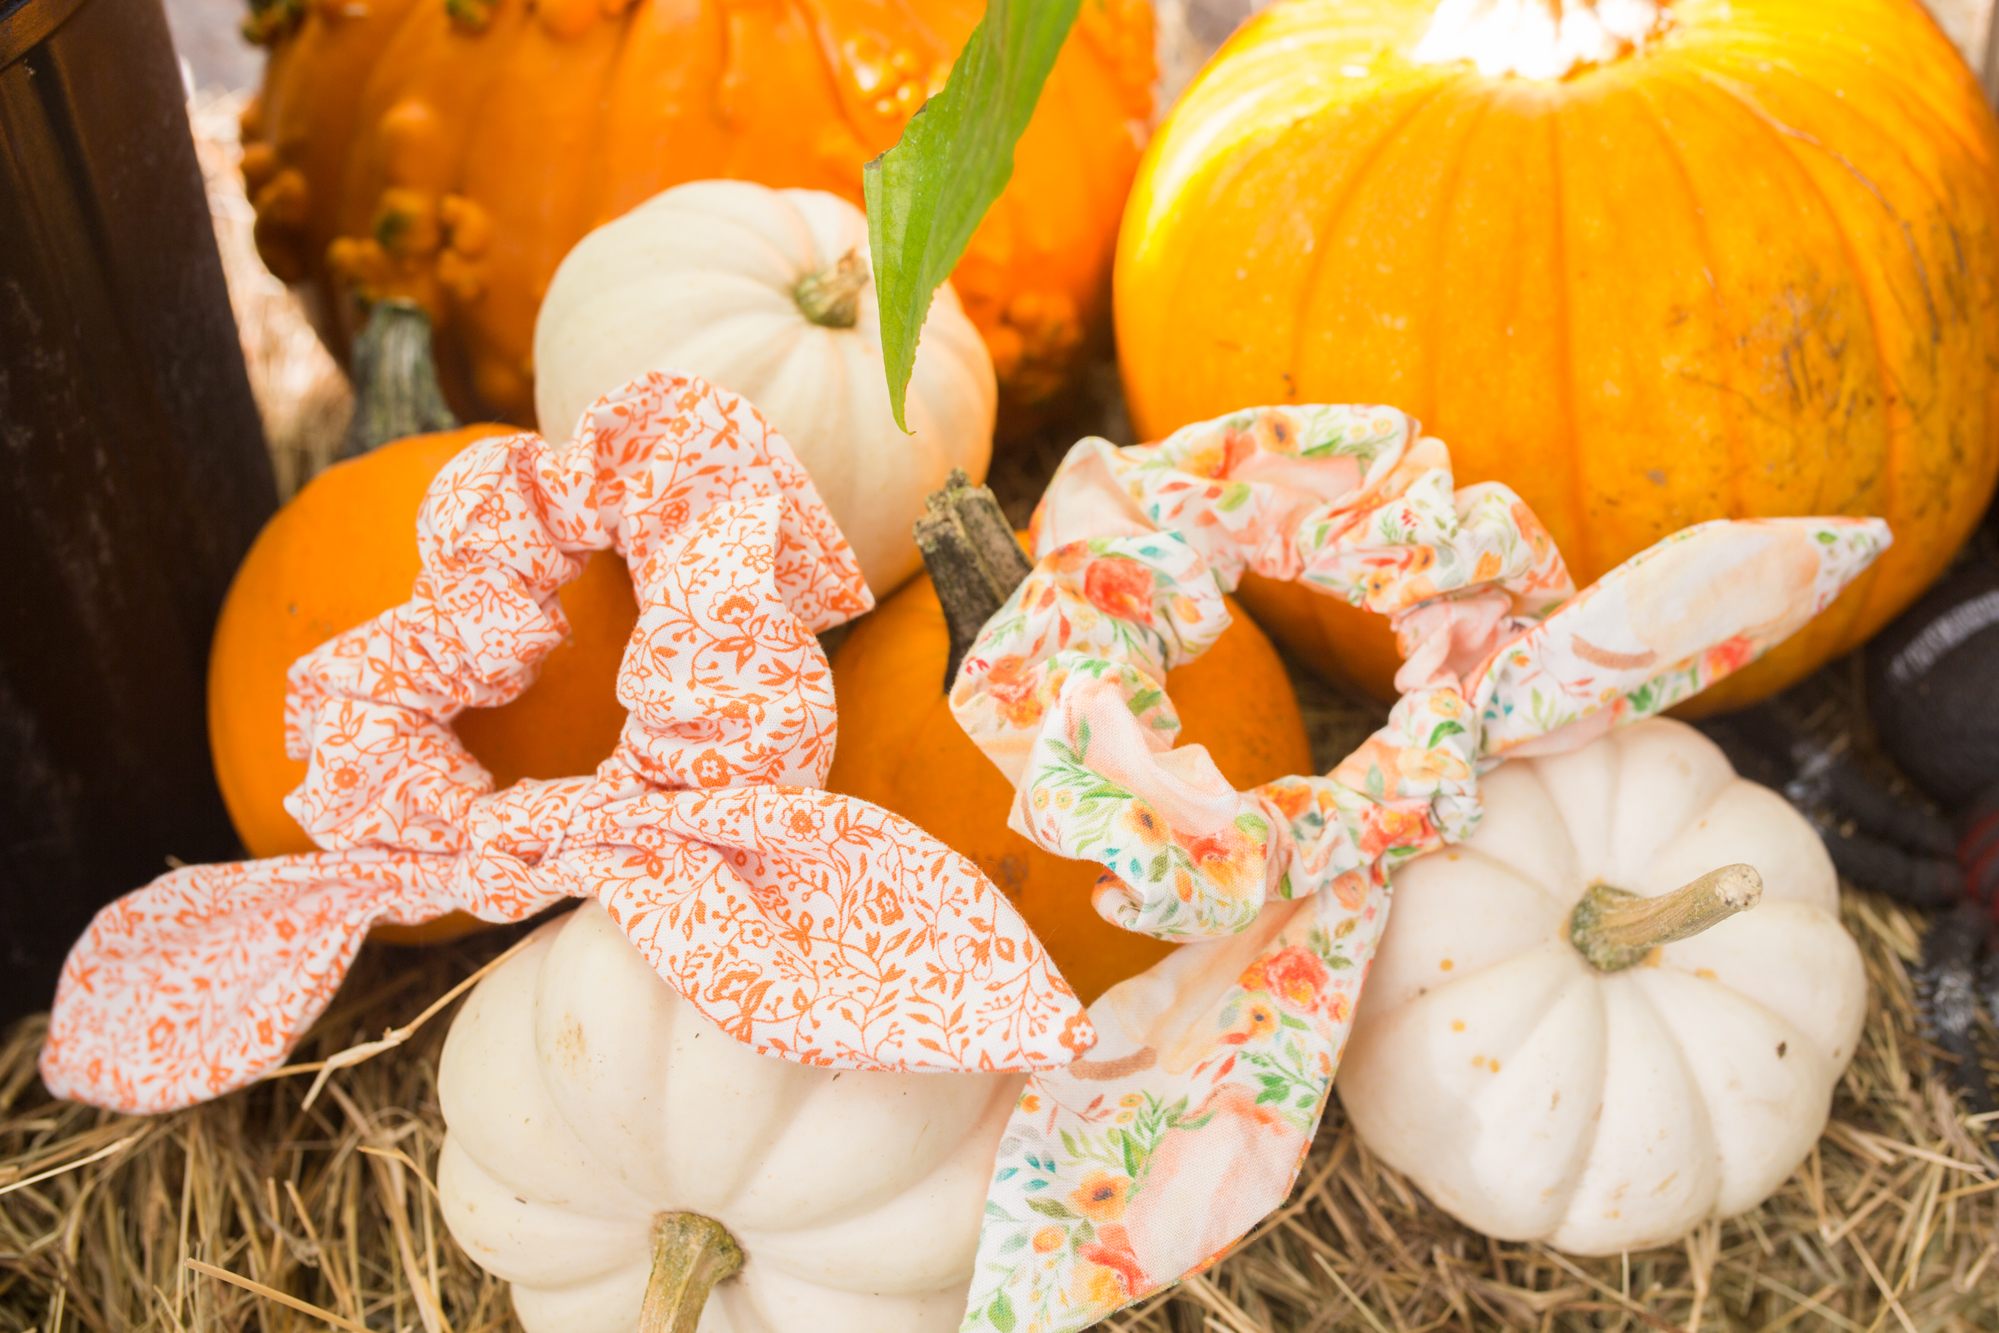 Pumpkin Patch / Pumpkin Fall Scrunchie / Bow Scrunchie / Fall Outfit Women / Fall Outfit Ideas Casual / Fall Fashion Outfits / Fall Style - Sunshine Style - A Florida Fashion and Lifestyle Blog by Katie